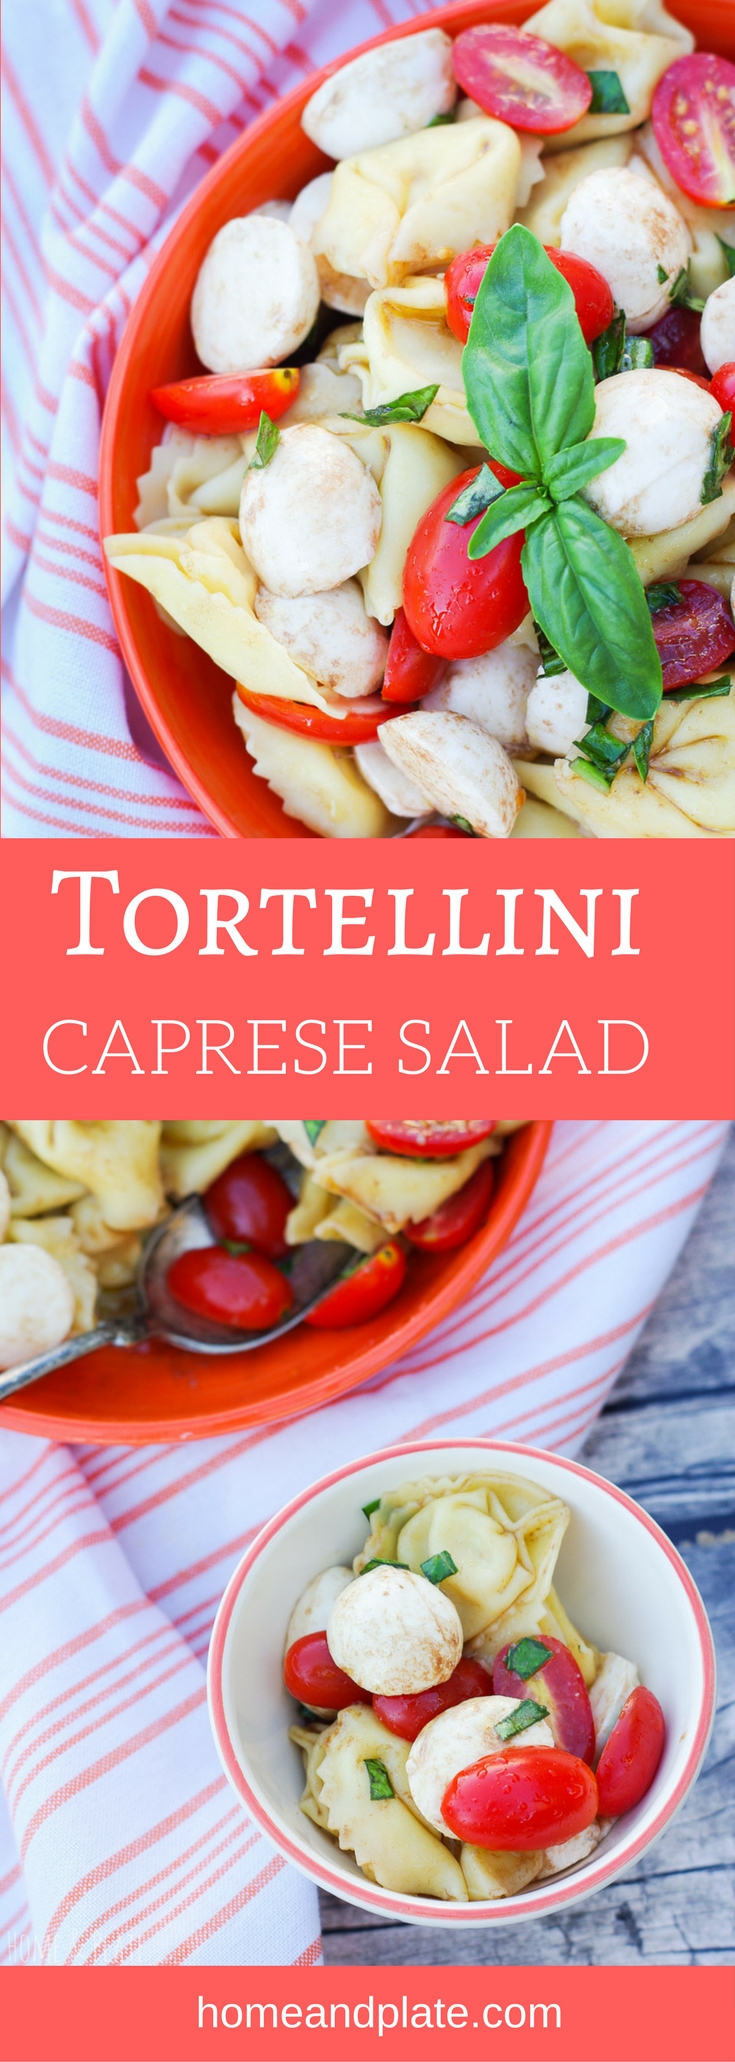 Tortellini Caprese Salad | www.homeandplate.com | A classic summer pasta salad featuring juicy red ripe tomatoes, fresh mozzarella cheese, homegrown basil and cheesy tortellini.